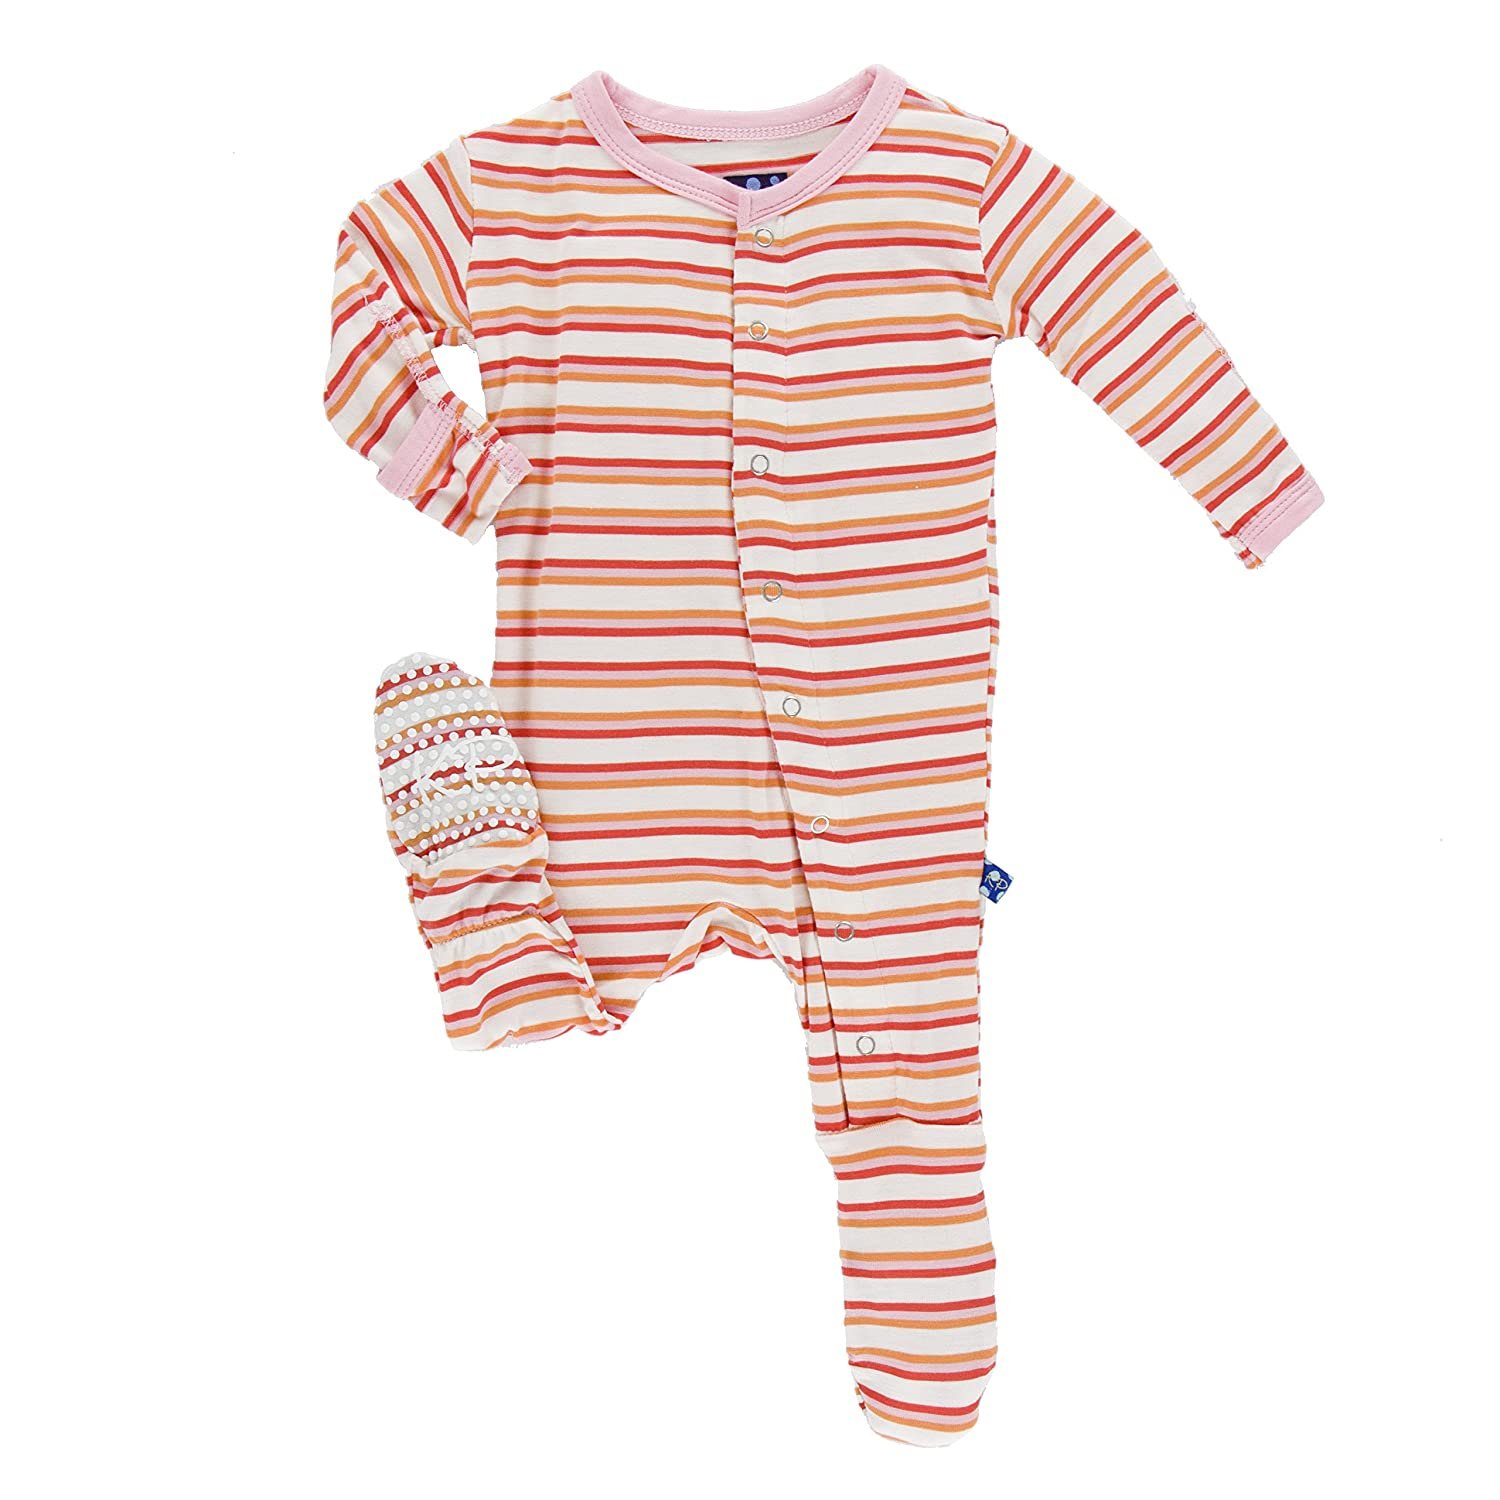 正規 KicKee Pants SLEEPWEAR ベビーガールズ B06XS6V6ZK Fresh Water SLEEPWEAR Months|Fresh Stripe B06XS6V6ZK 0 - 3 Months 0 - 3 Months|Fresh Water Stripe, JUNCTION PRODUCE 公式:f66abe1c --- svecha37.ru